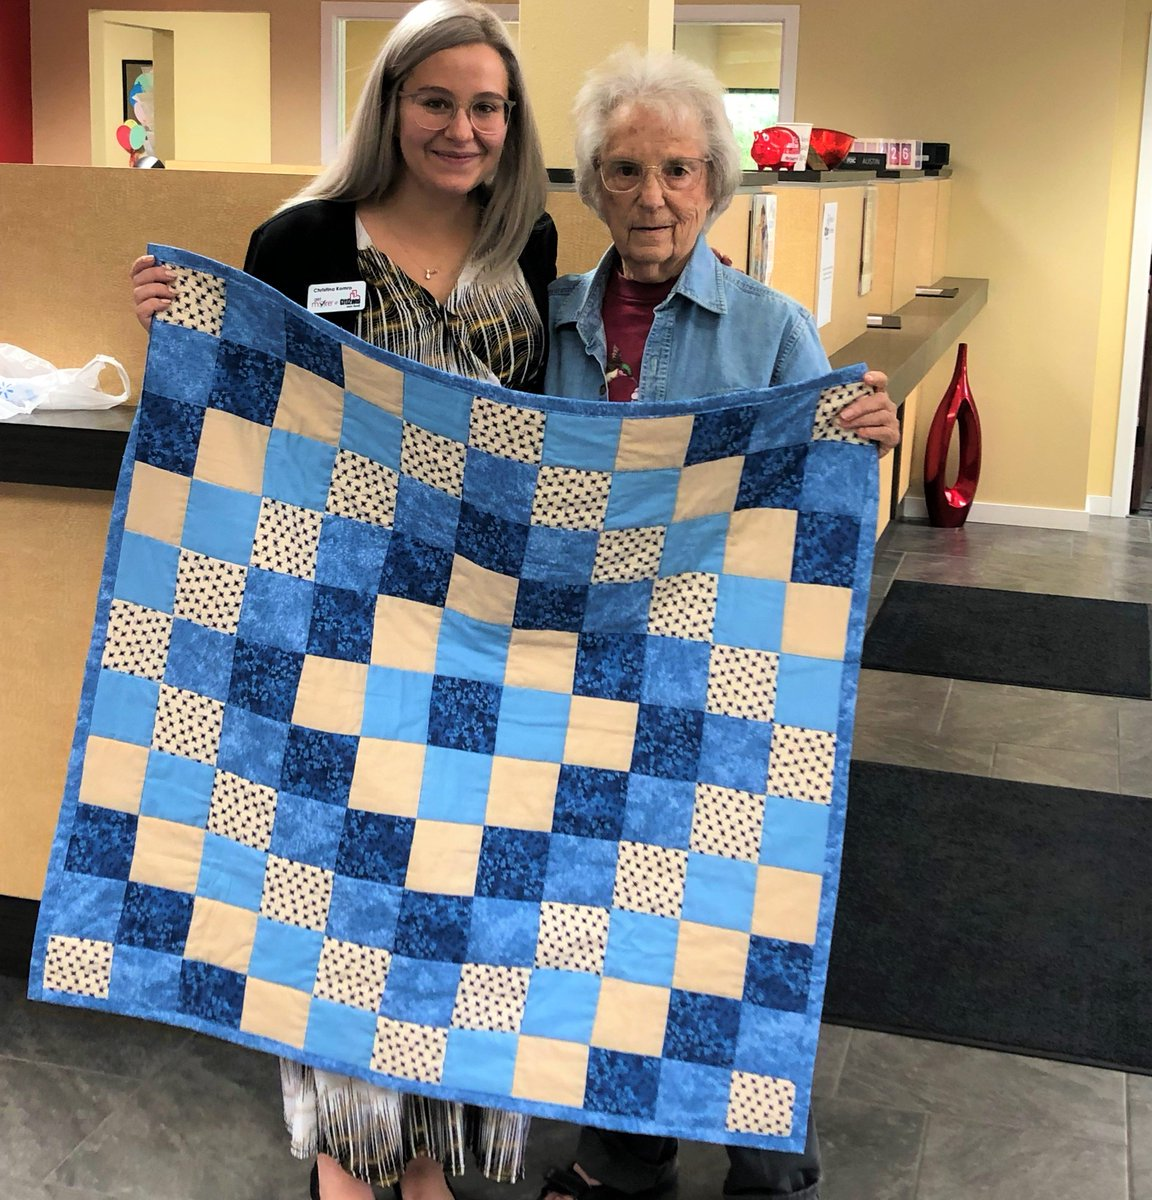 Our customers are family... and here is photographic evidence!  The awesome Christina K. in our Eau Claire office is rapidly approaching the welcoming of a little bundle of joy...and one of our customers made her a gorgeous quilt to celebrate the occasion! #CitizensExperience https://t.co/cI41Z6zi4v